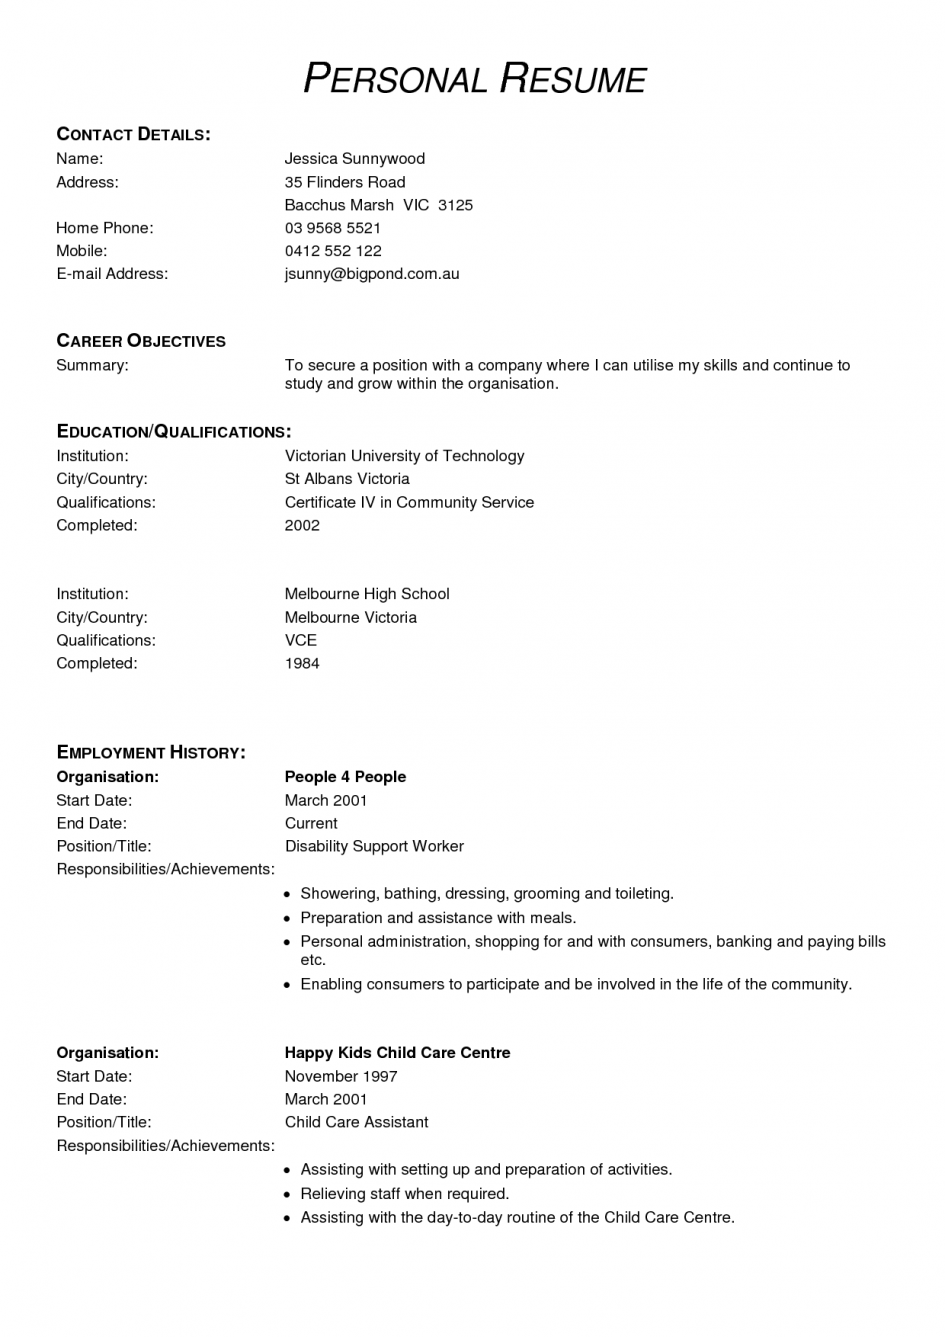 Health care assistant cv with no 945 1337 for Cover letter for chiropractic assistant